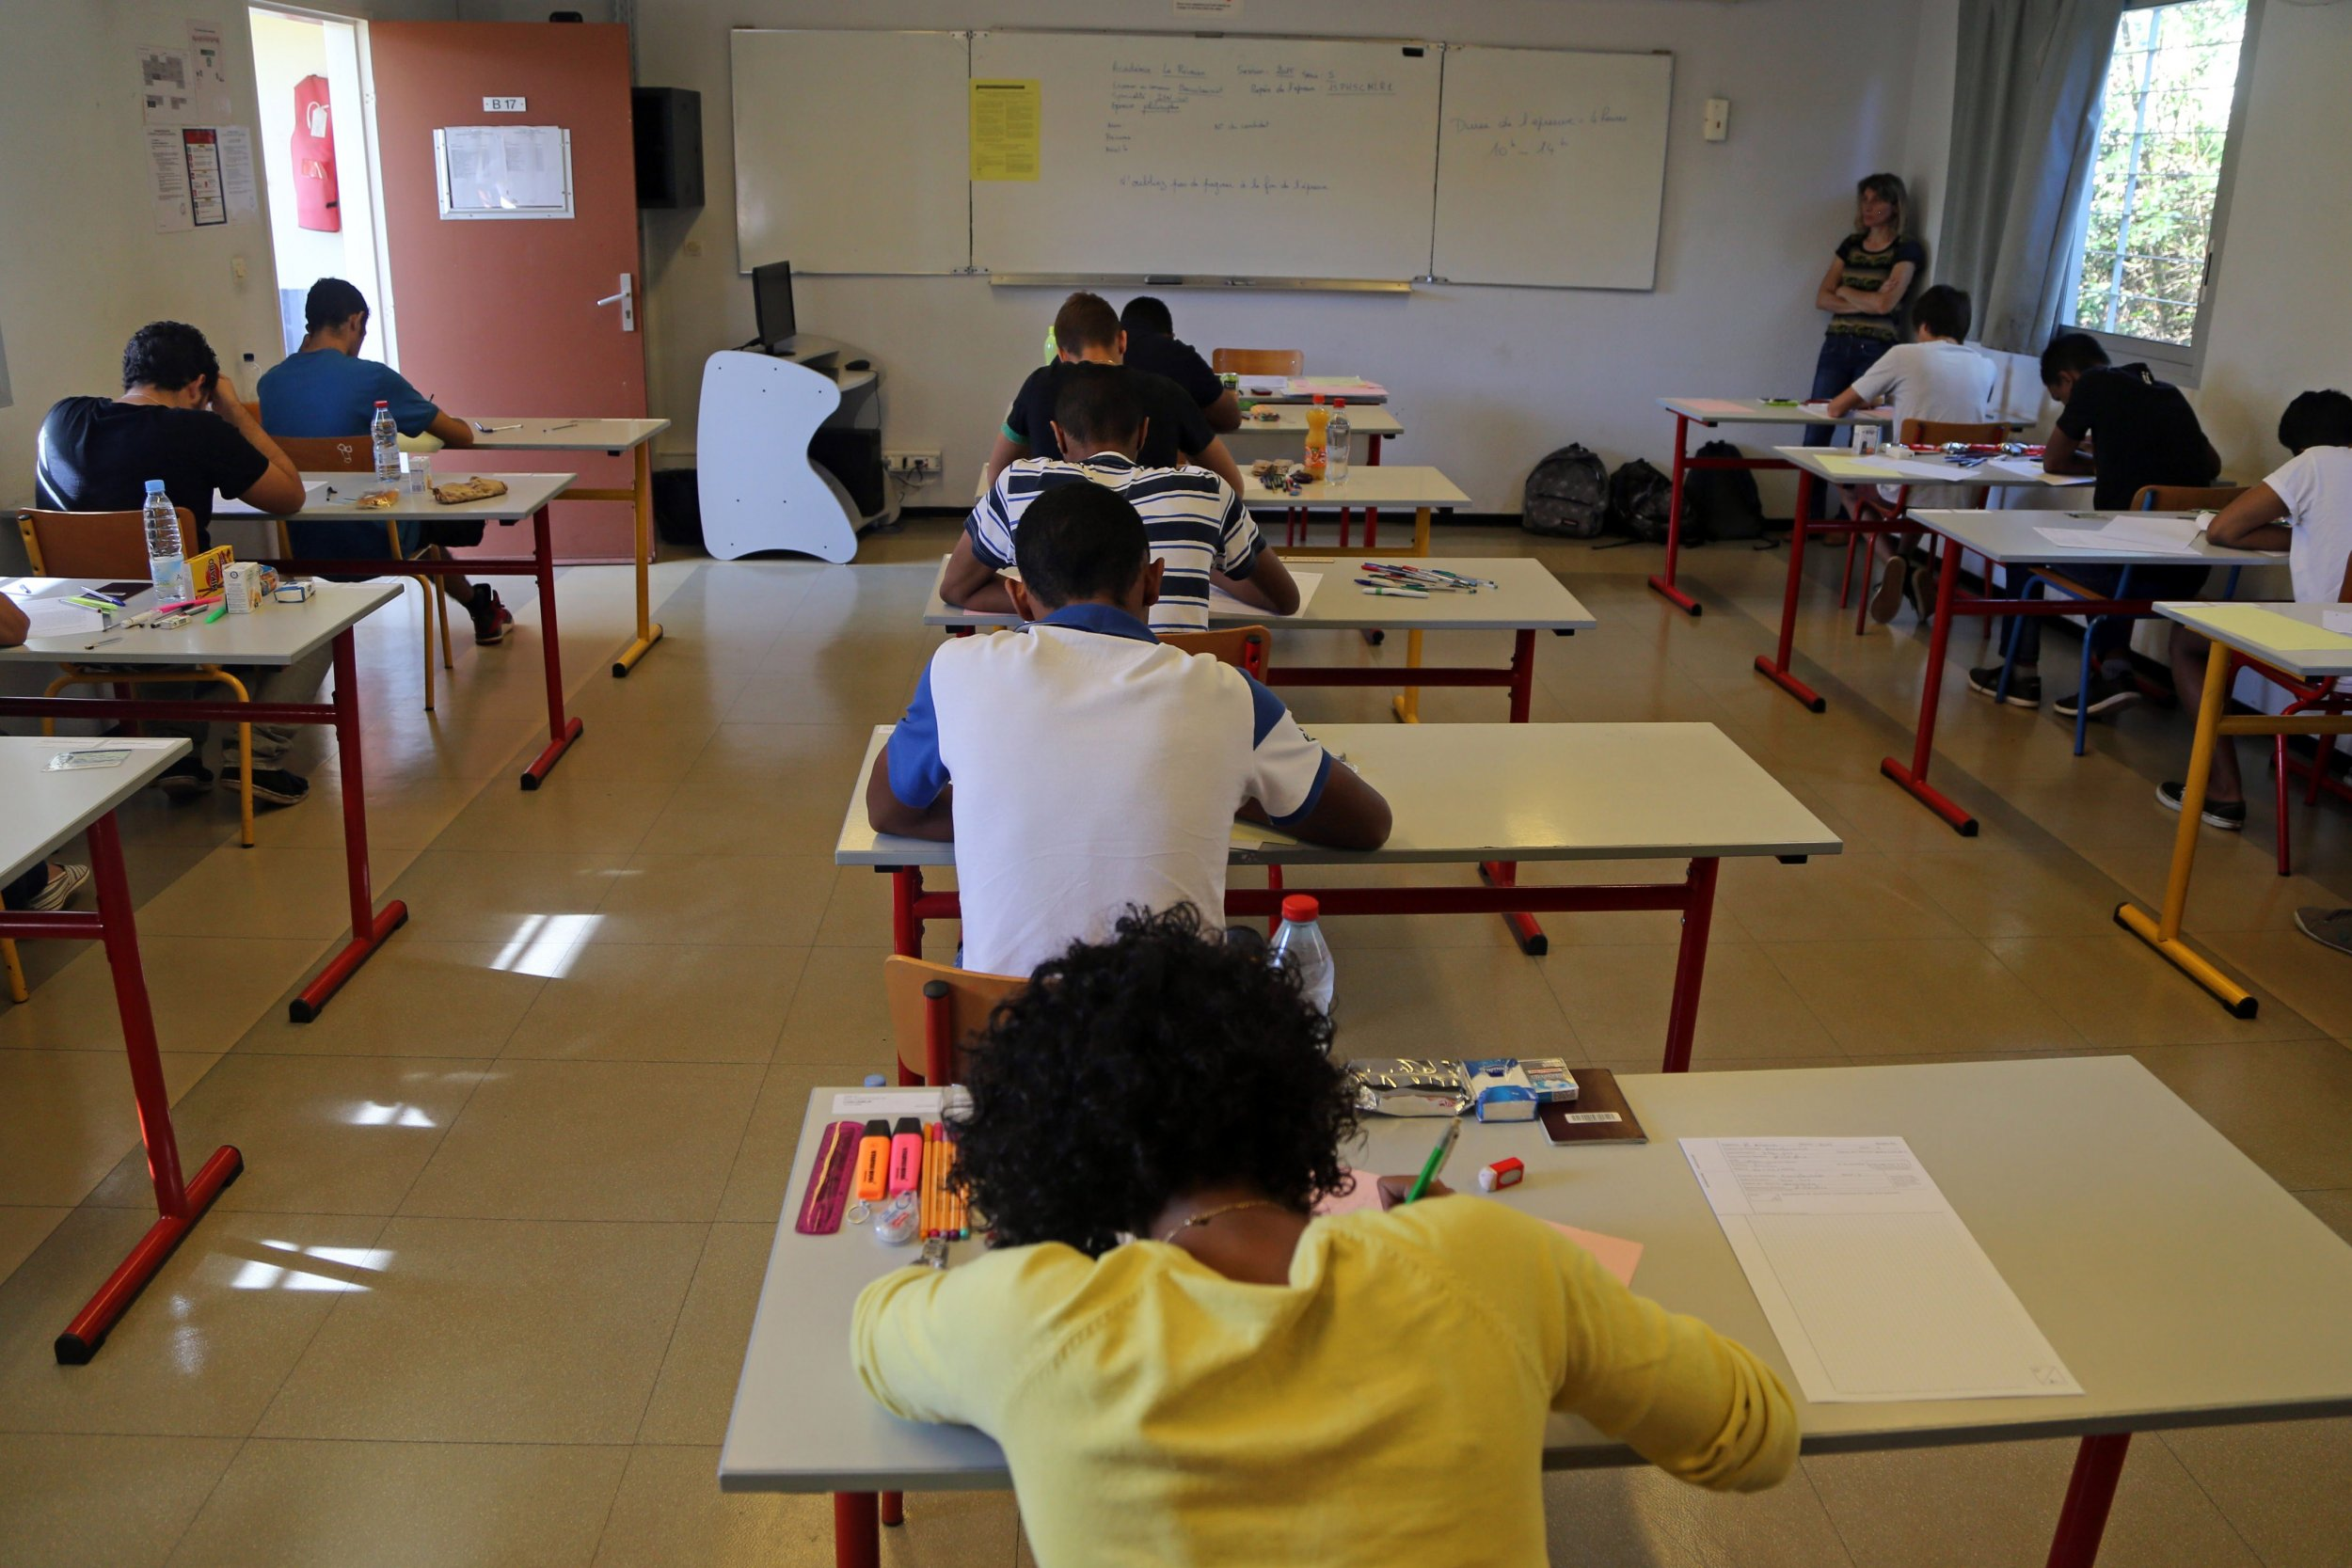 School classroom in Reunion, French Island in the Indian Ocean